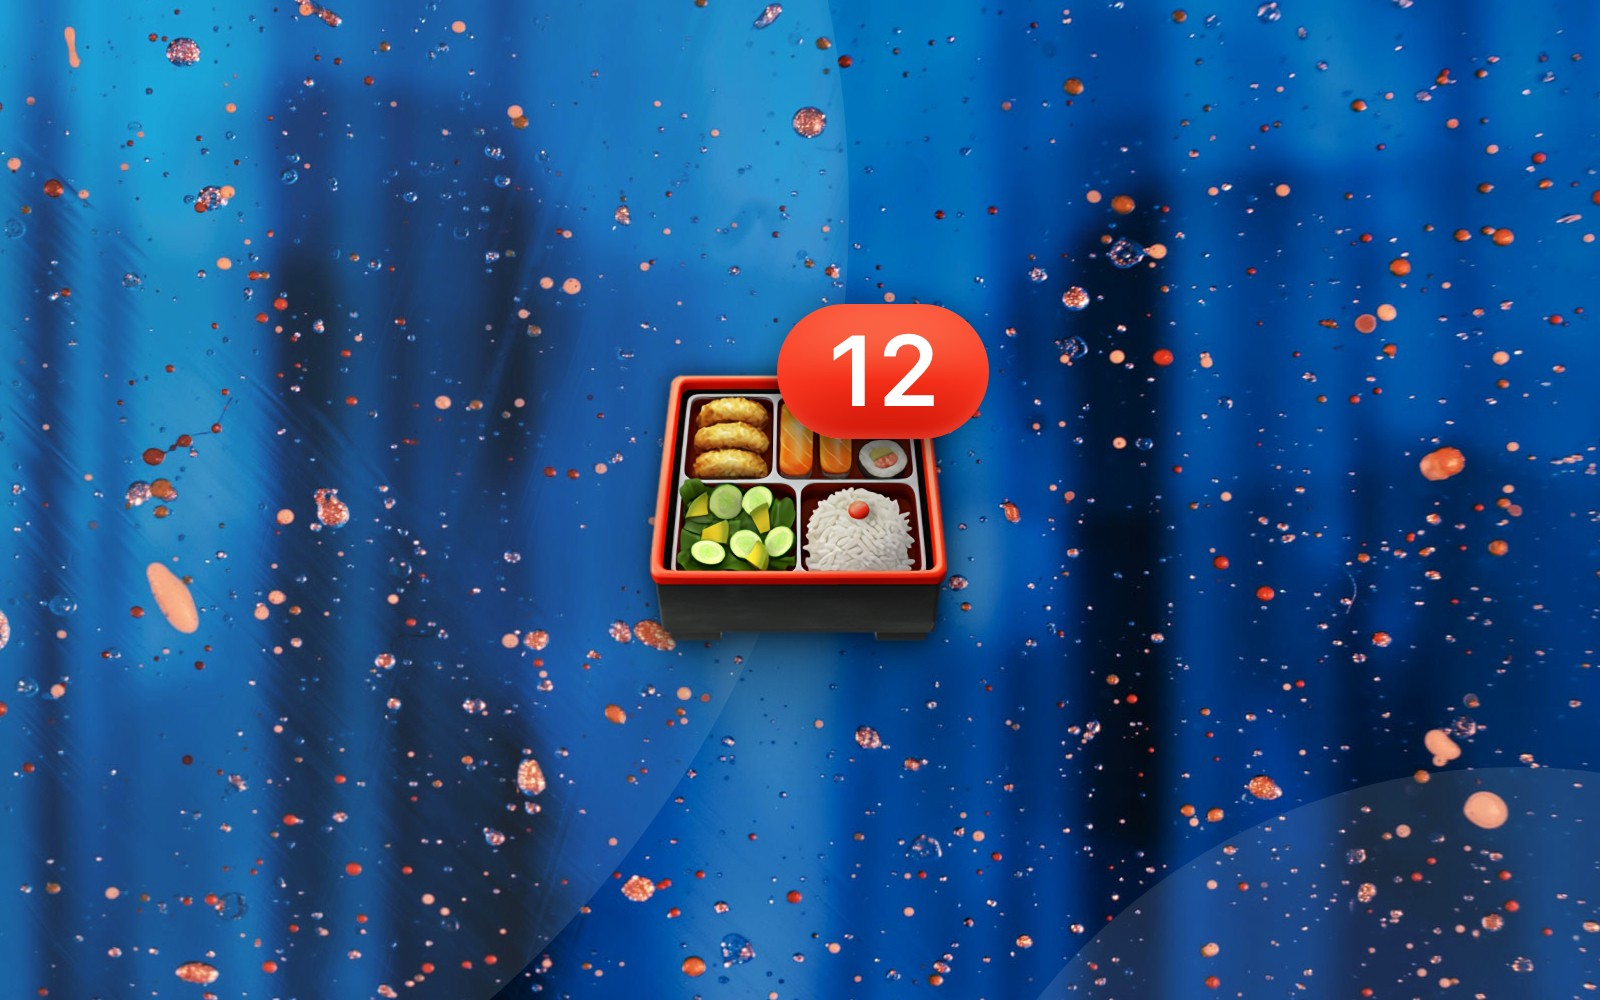 Bento box emoji with number 12 badge resting on an exploding azure background